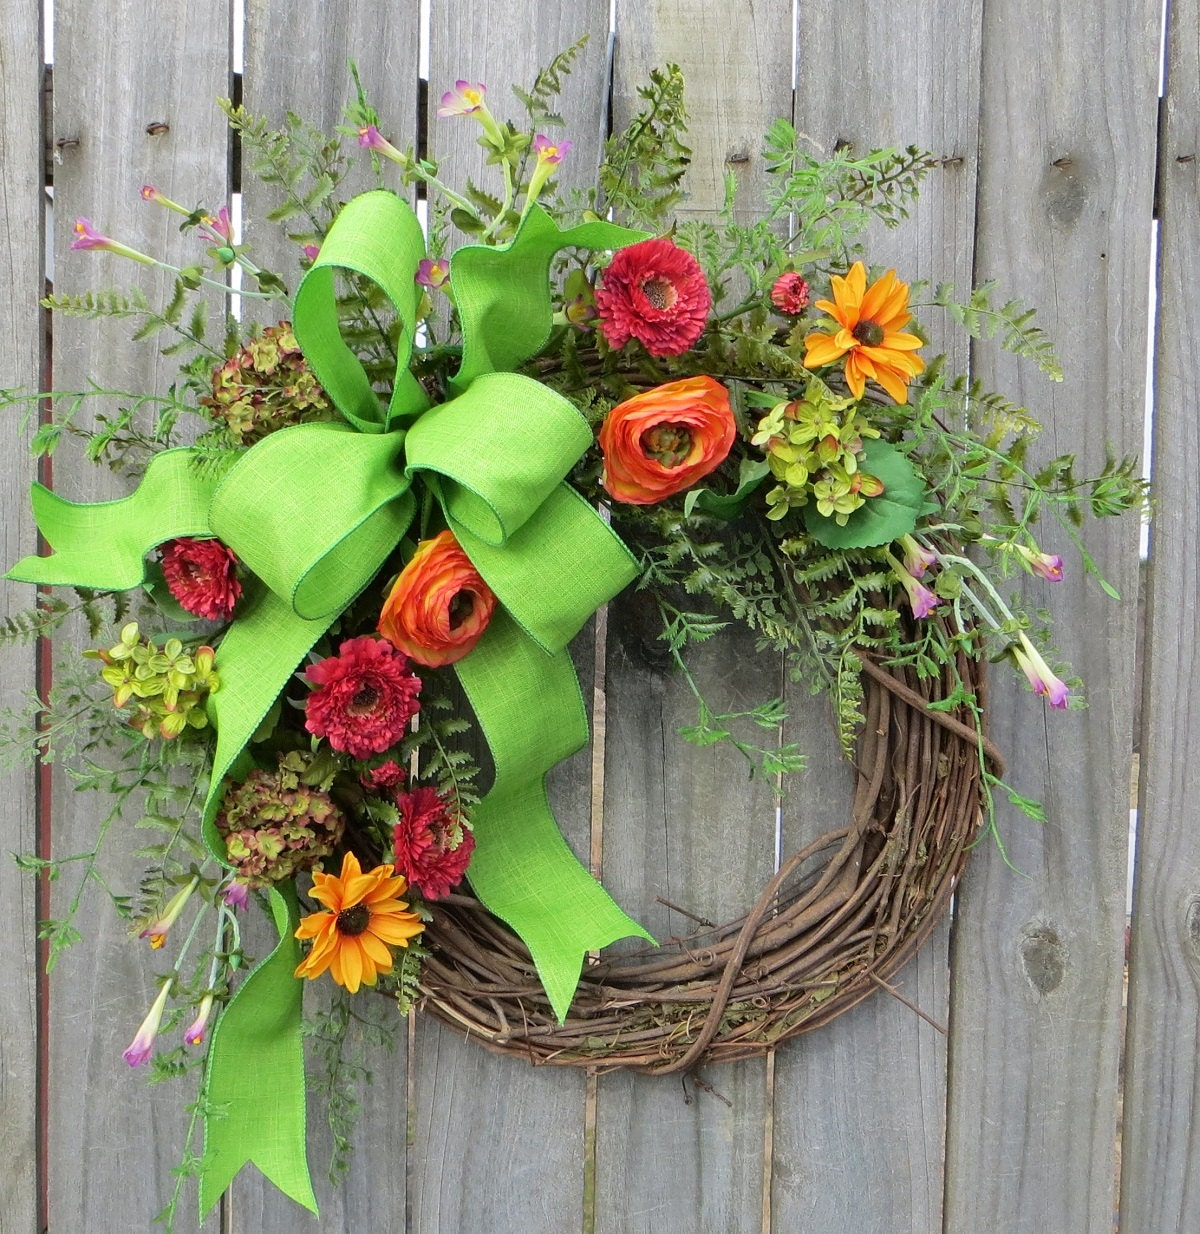 Spring Wreath Easter Wreath Floral Wreath Designer Floral |Spring Flower Wreath